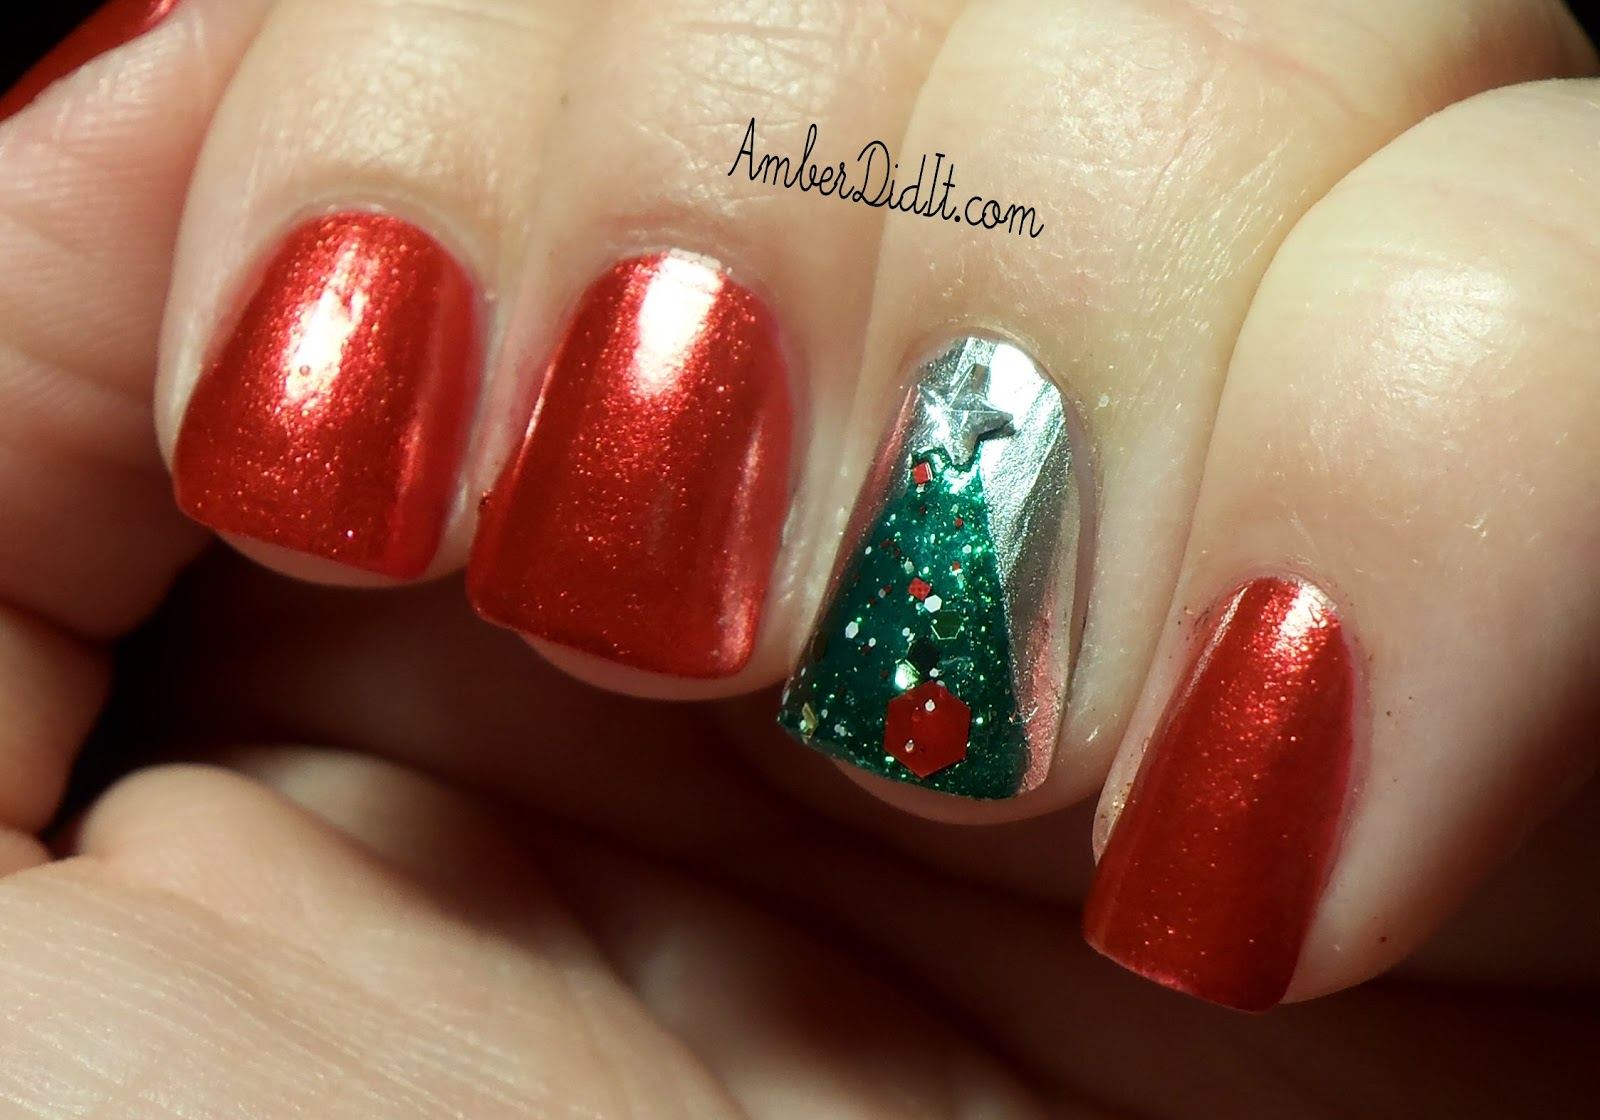 Amber did it!: OH Christmas Tree nails